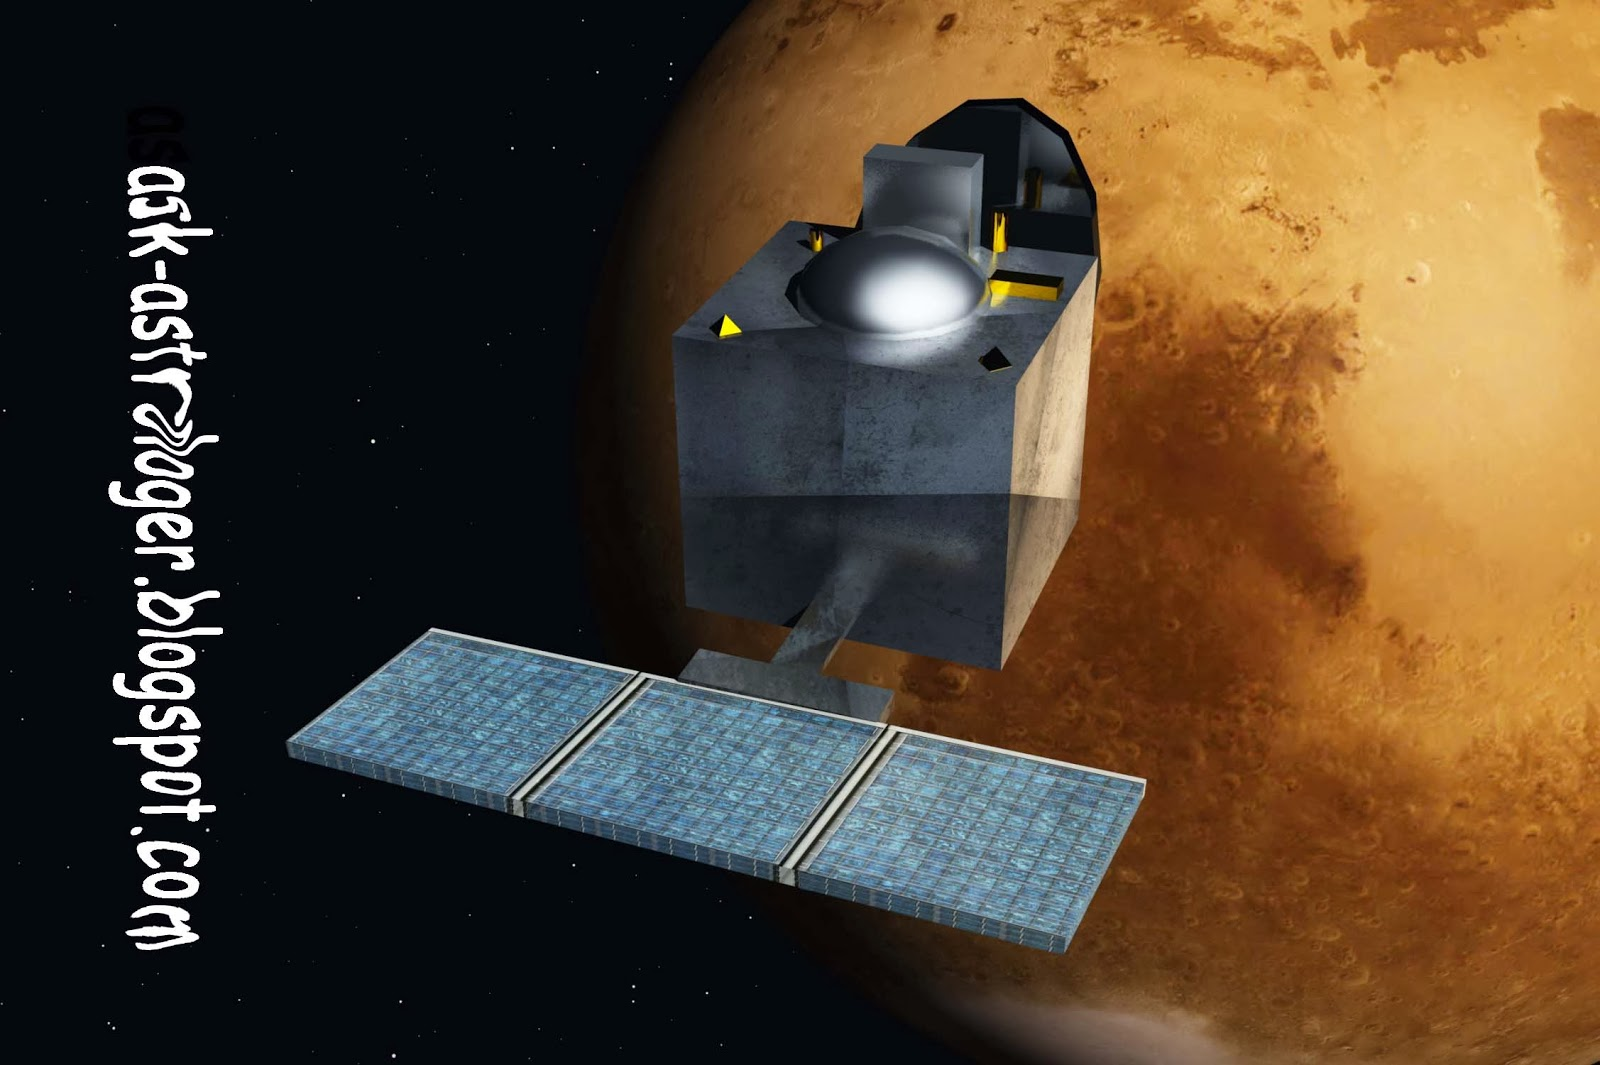 Mars Mission in India